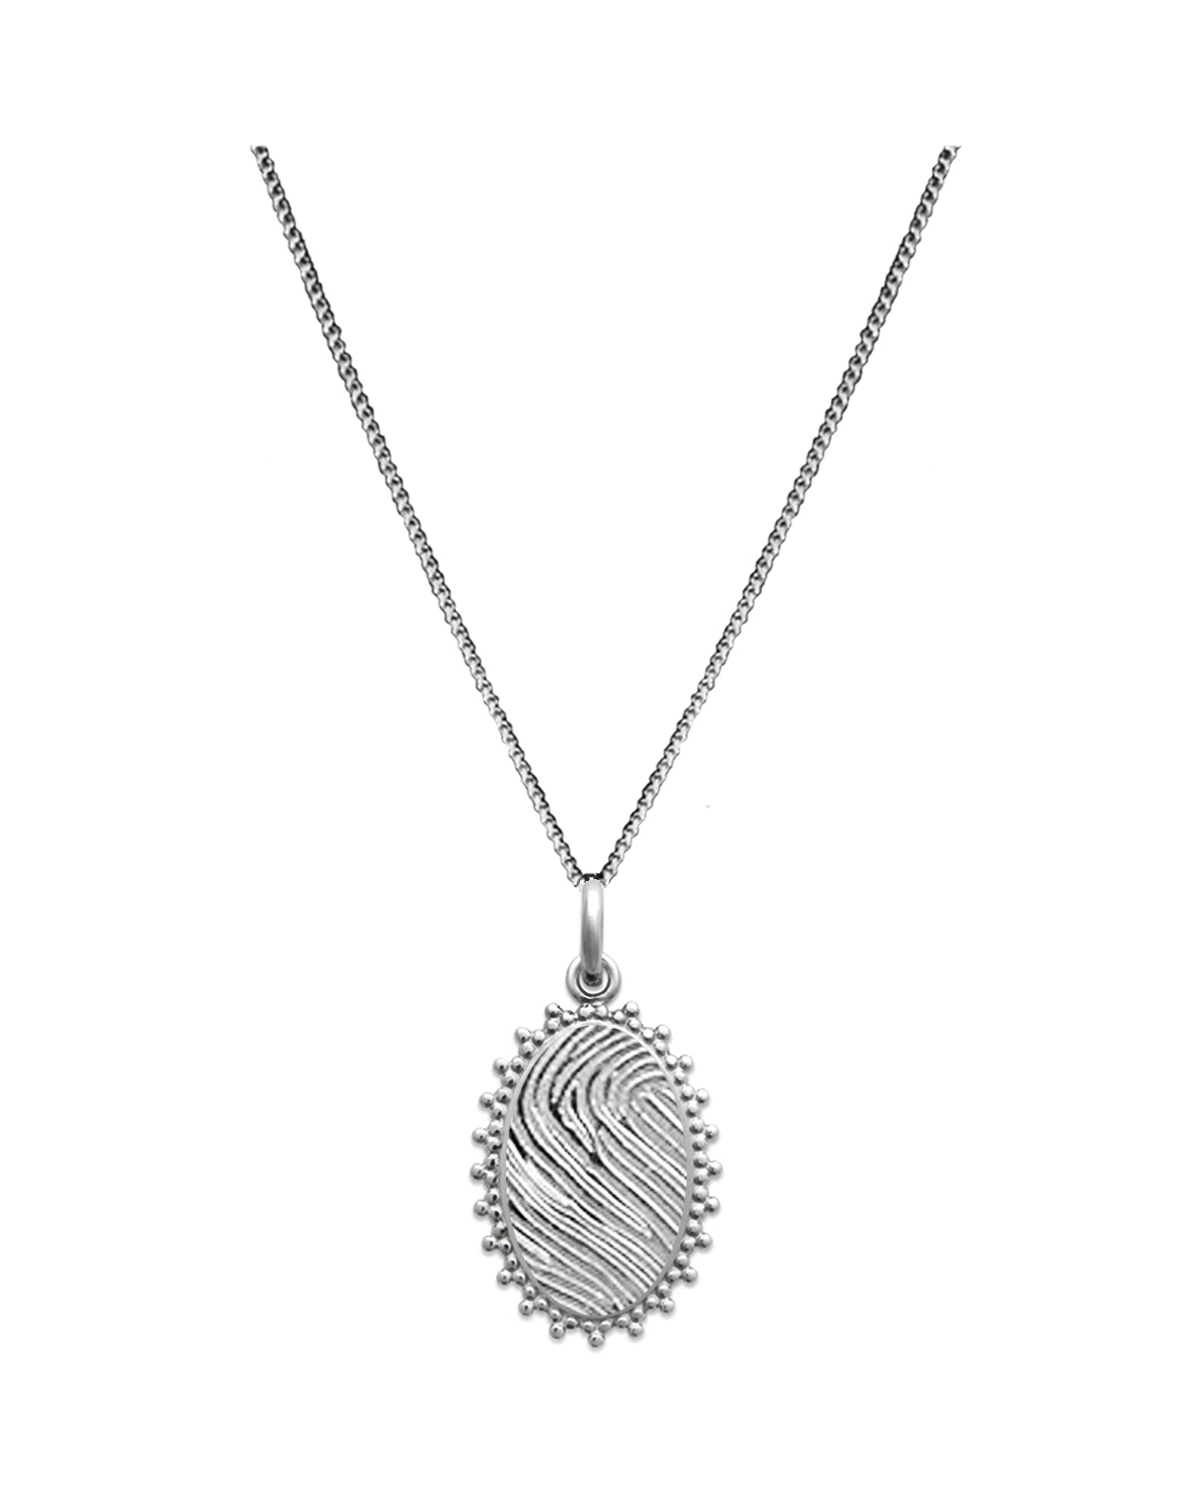 Oval Necklace, Silver